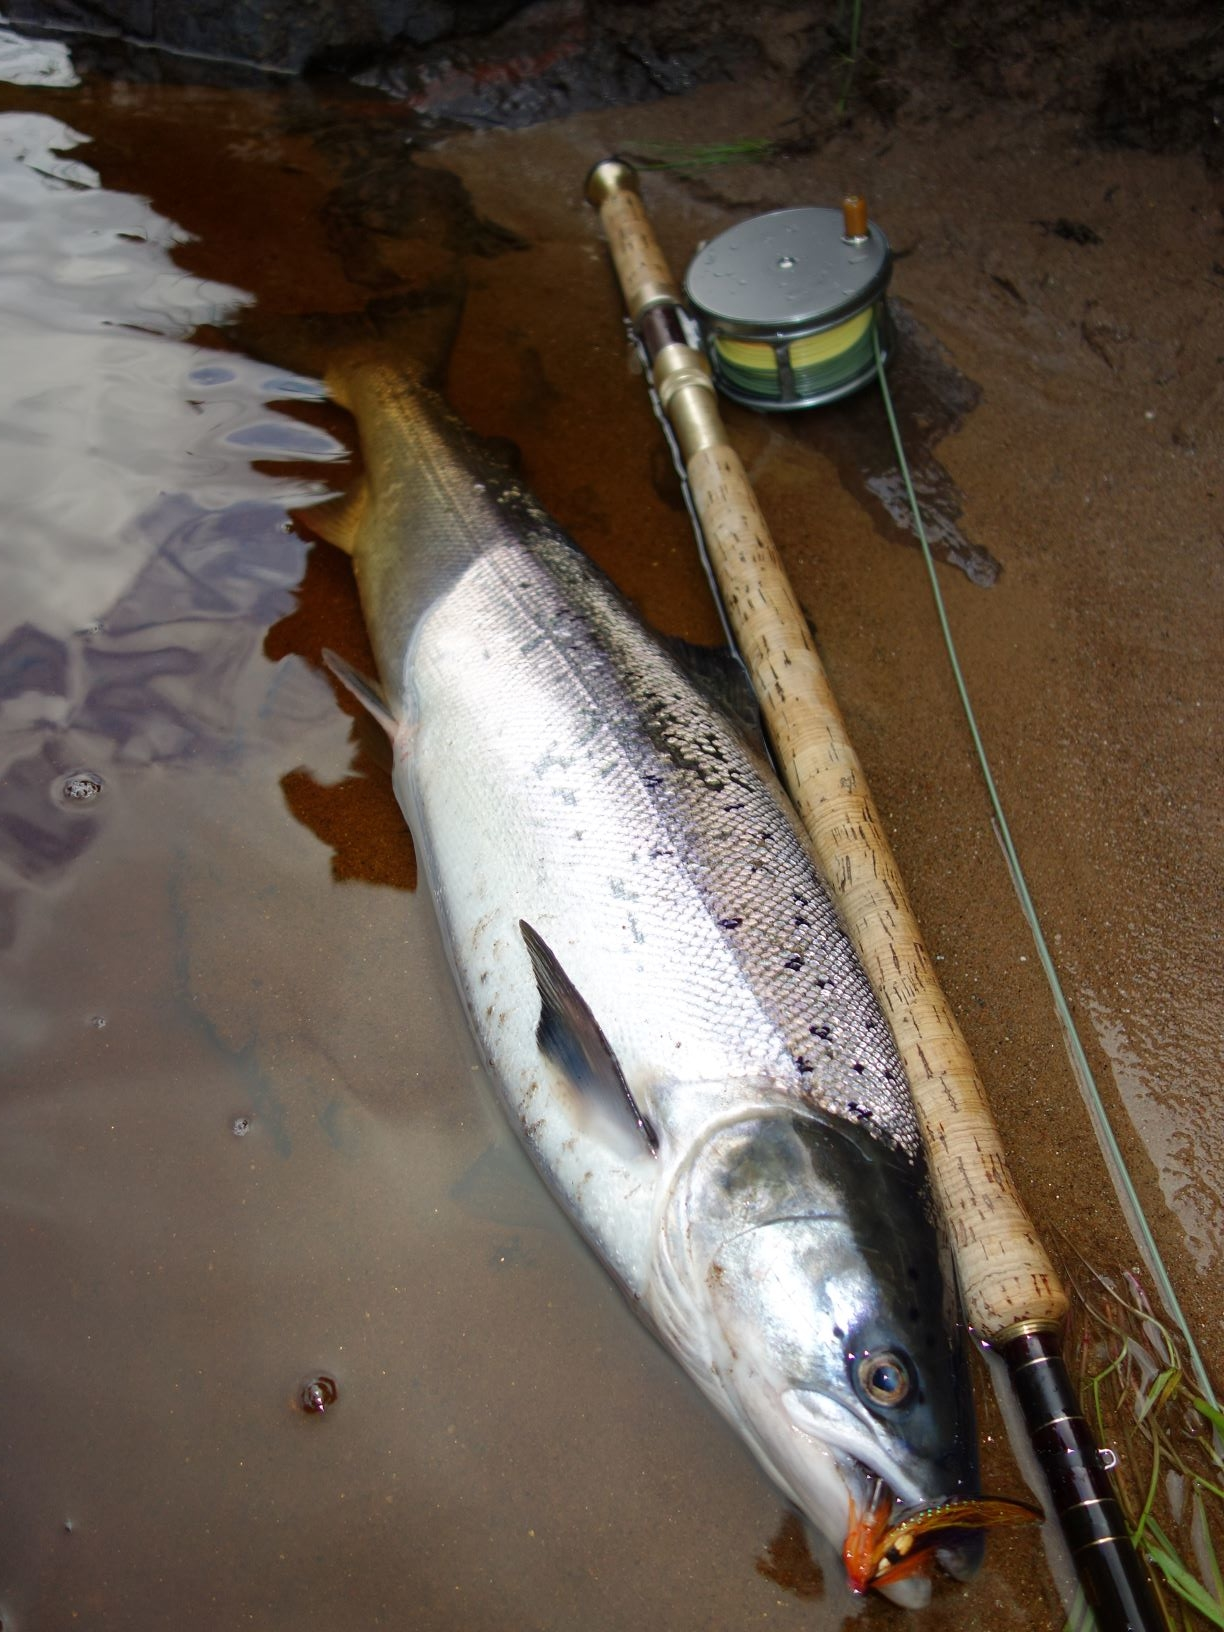 One of two fresh fish from the tail of Craigie Pool, Upper Home Beat, Darnaway, River Findhorn in early June